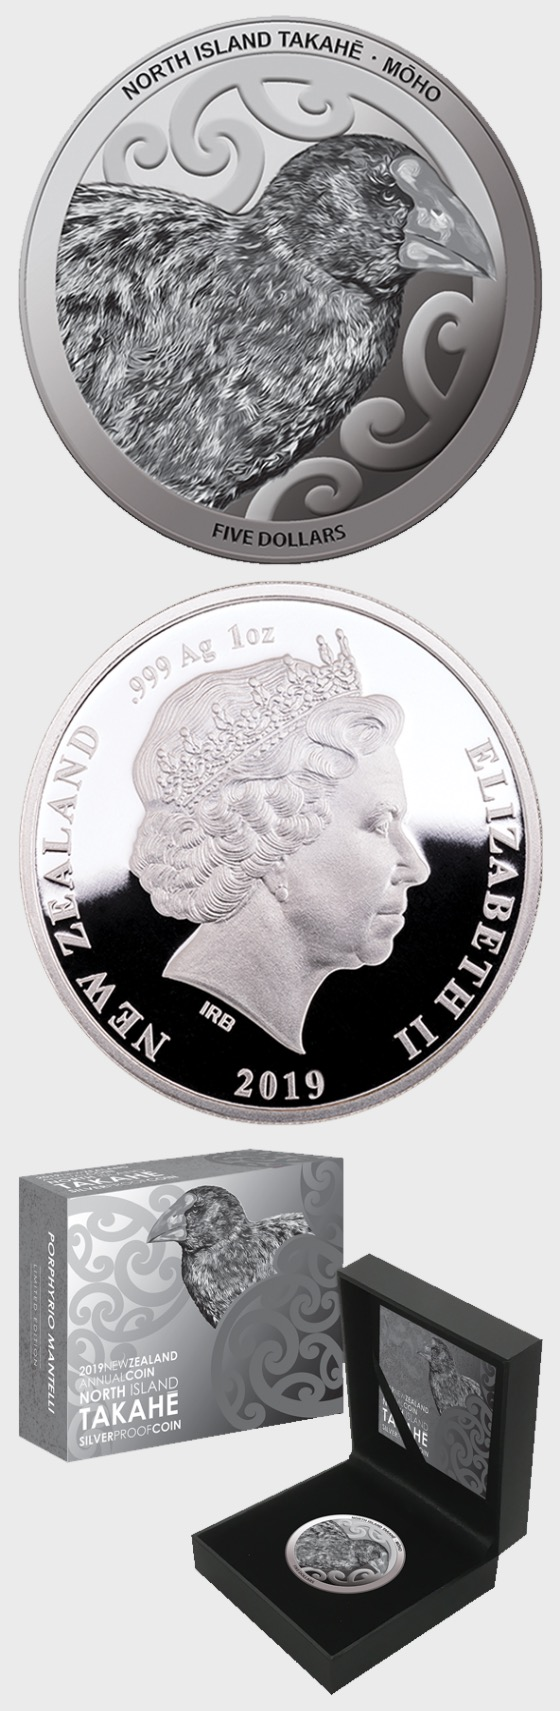 2019 New Zealand Annual Coin: North Island Takahe Silver Proof Coin - Silver Coin